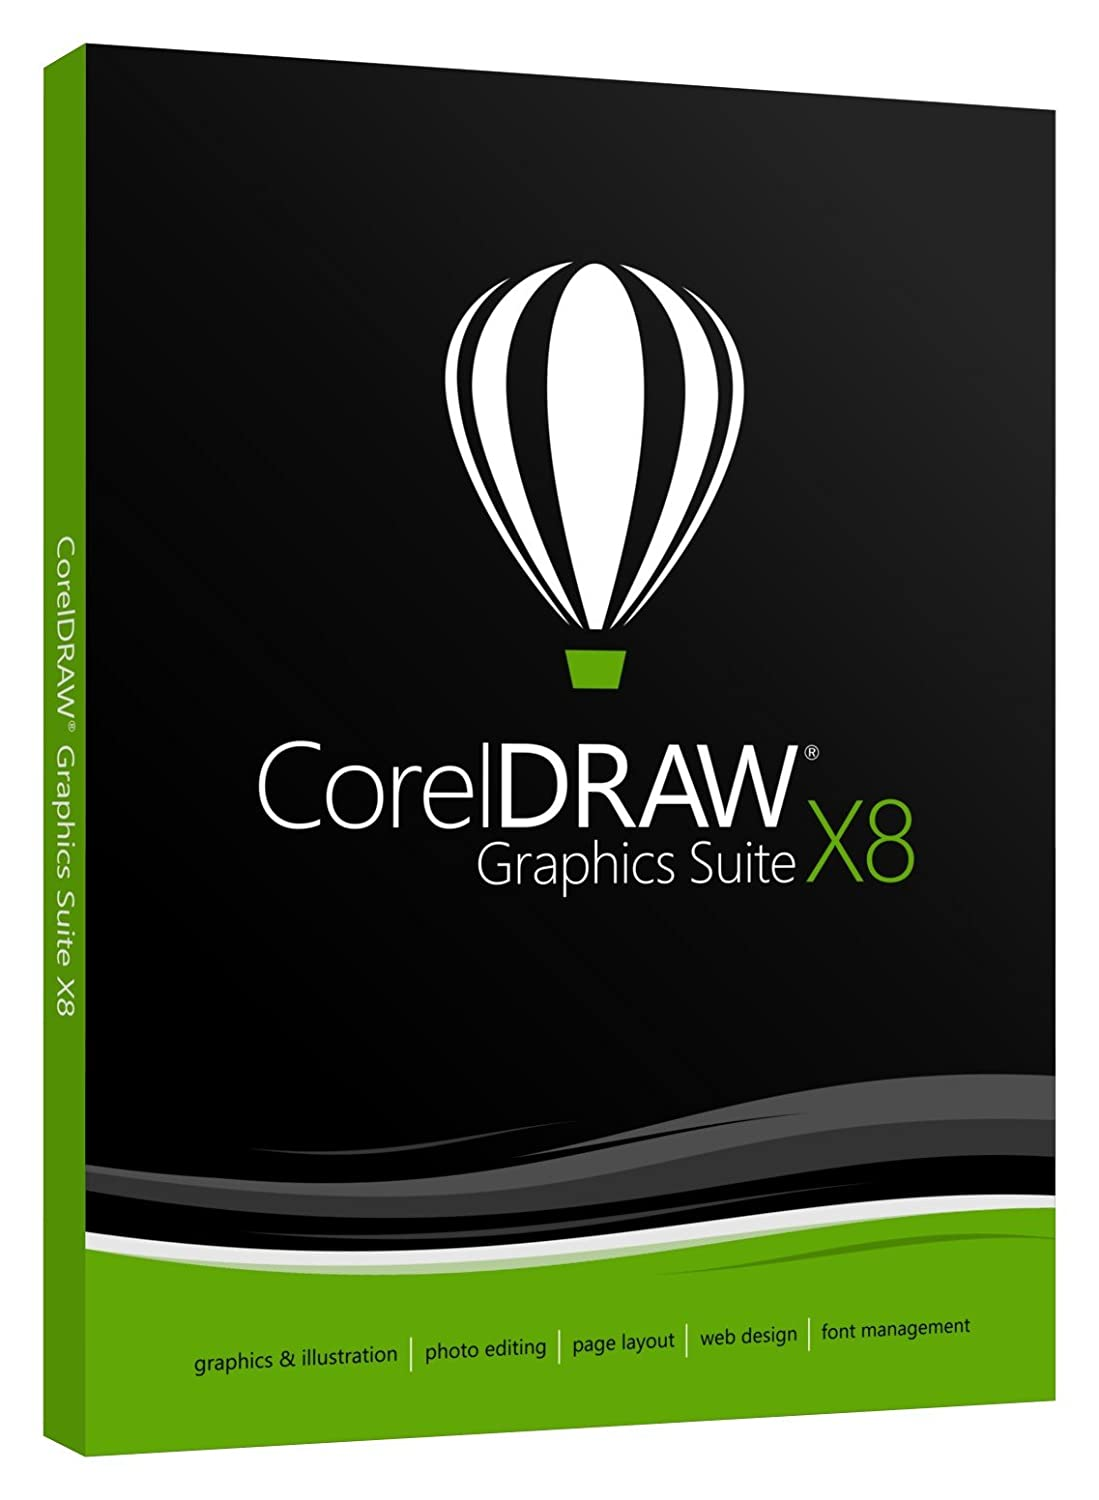 CorelDRAW Graphics Suite X8 Academic